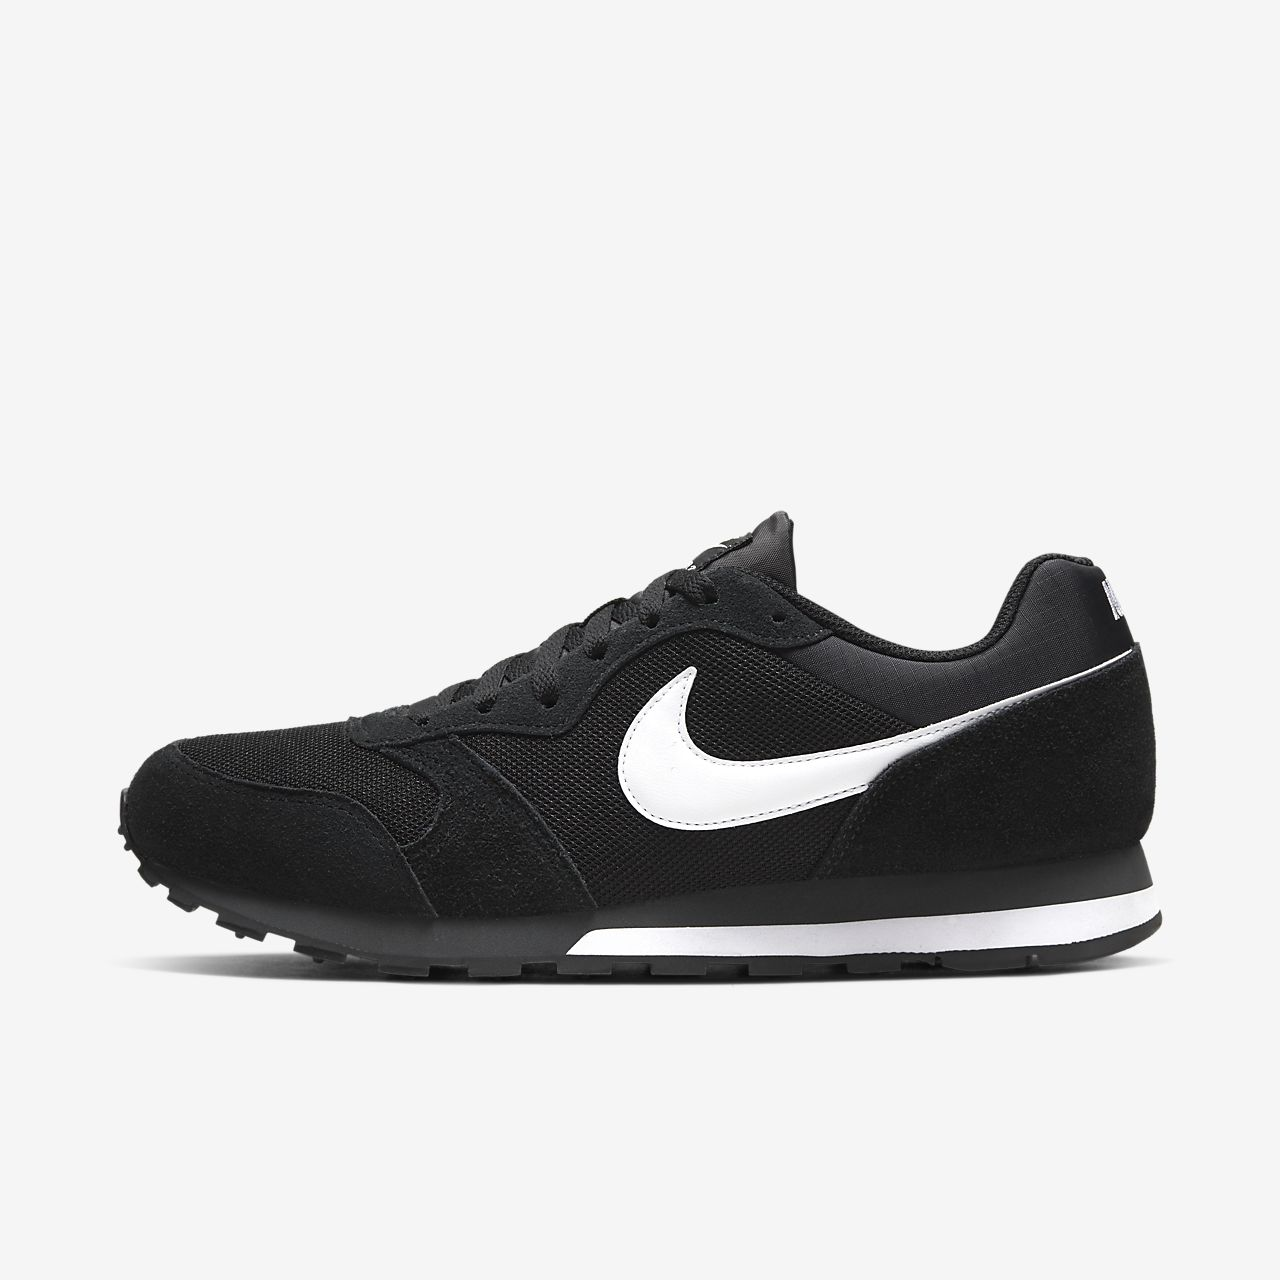 best sneakers 40af6 e2a94 Low Resolution Chaussure Nike MD Runner 2 pour Homme Chaussure Nike MD  Runner 2 pour Homme